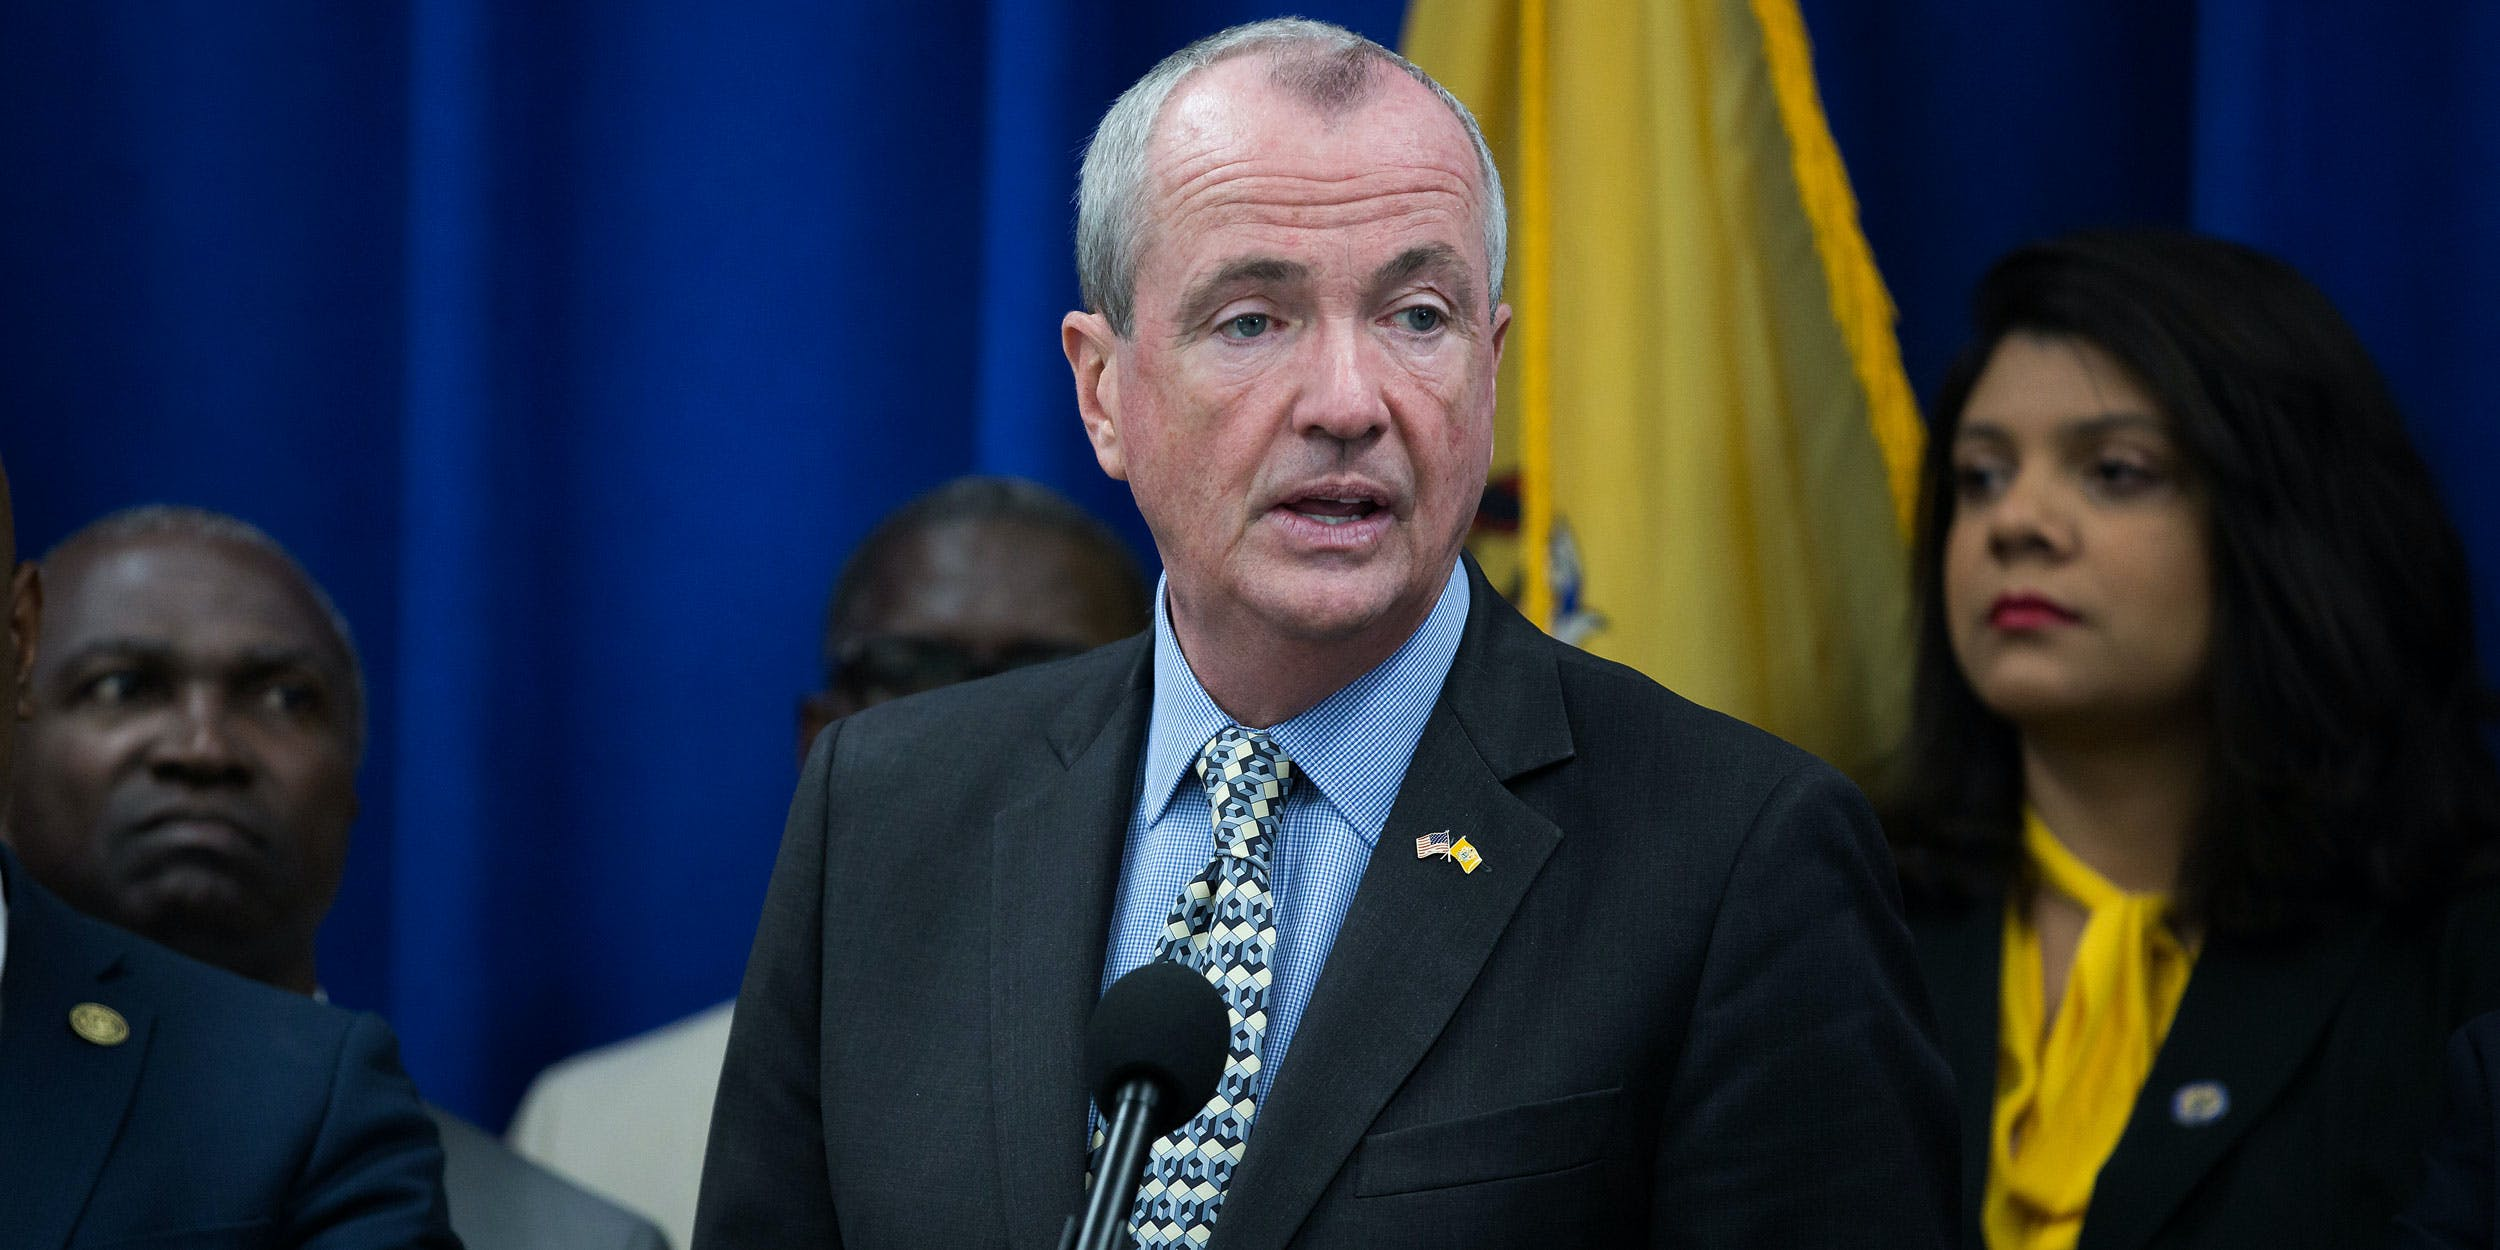 Phil Murphy, governor of New Jersey, speaks while Ras Baraka, mayor of Newark, left, listens during a budget press conference in Newark, New Jersey, U.S.